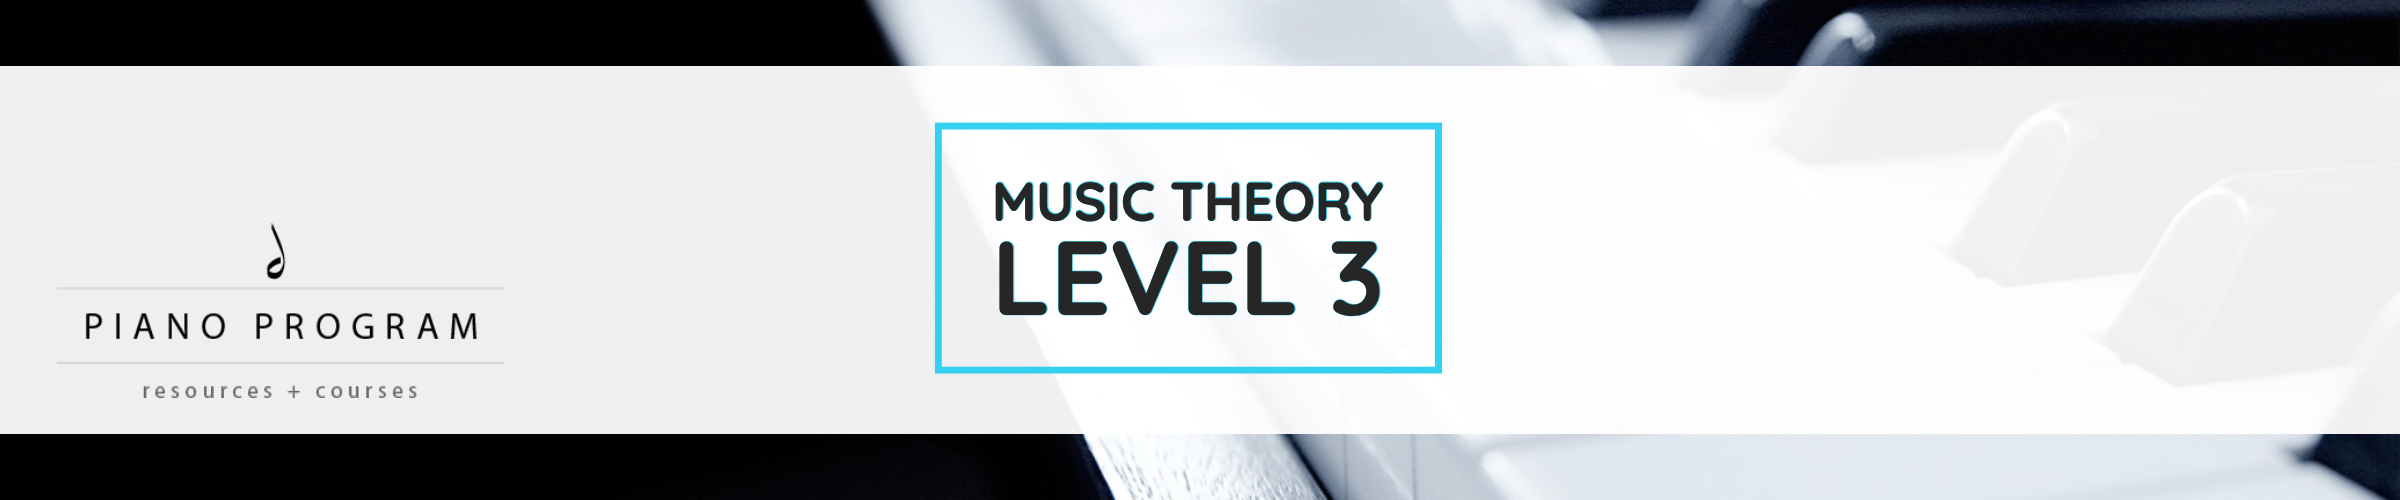 Cover pianoprogramtheory3